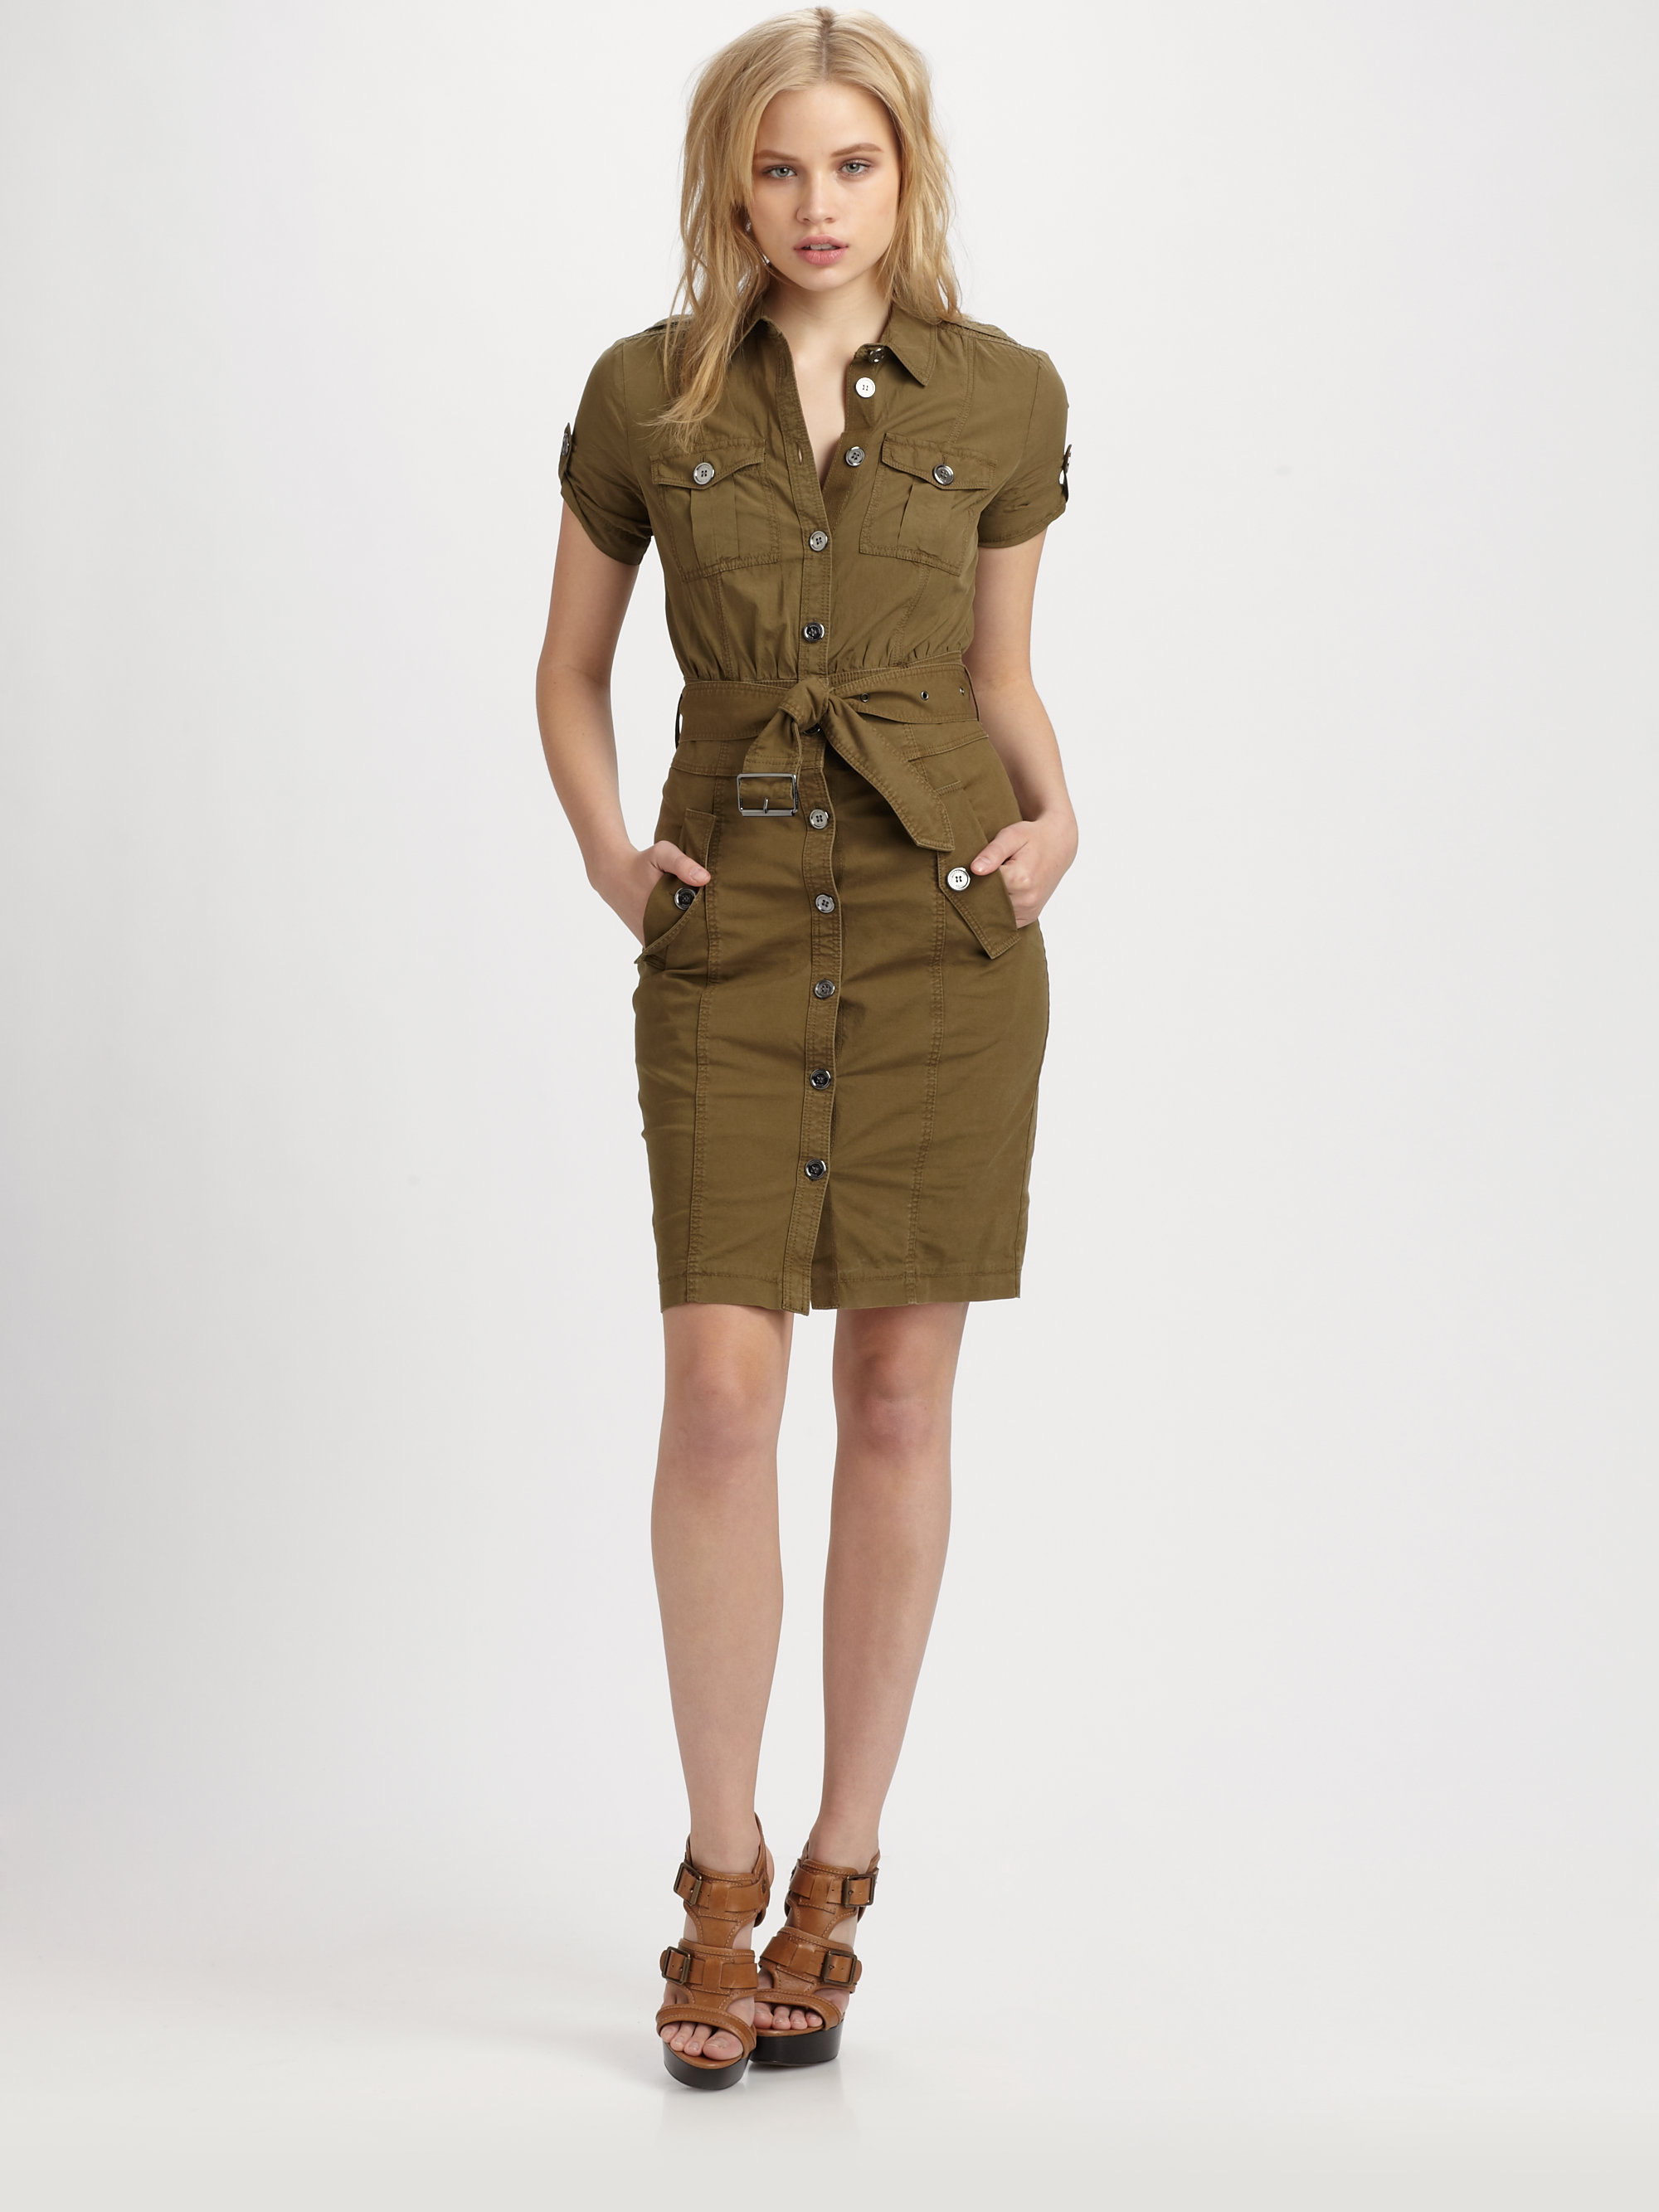 Lyst Burberry Brit Stretch Cotton Cargo Dress In Natural